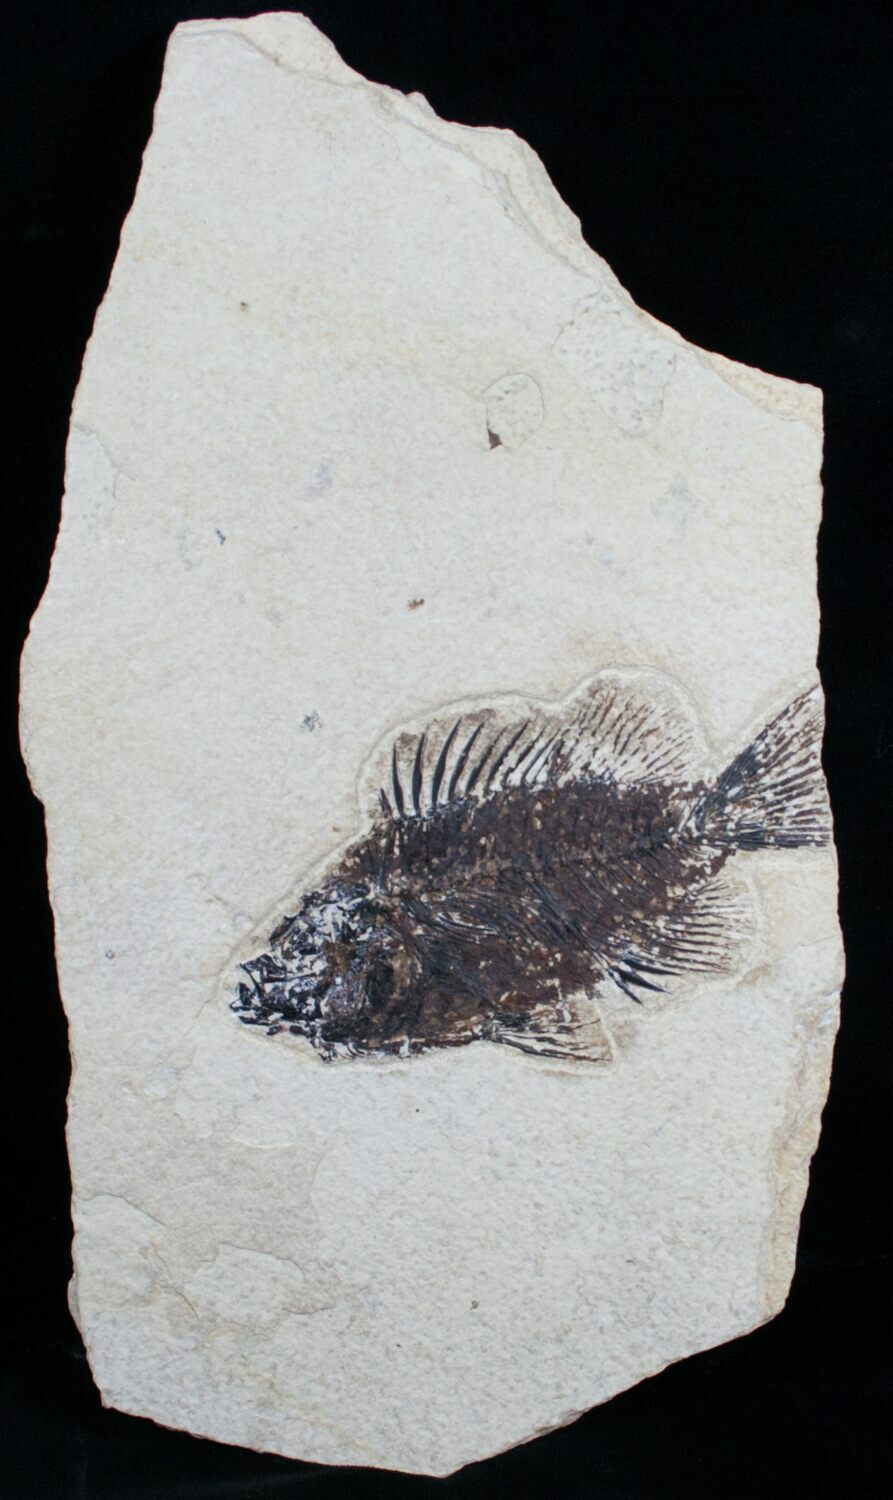 Bargain priscacara fossil fish 4 3 for sale 6032 for Fish fossils for sale